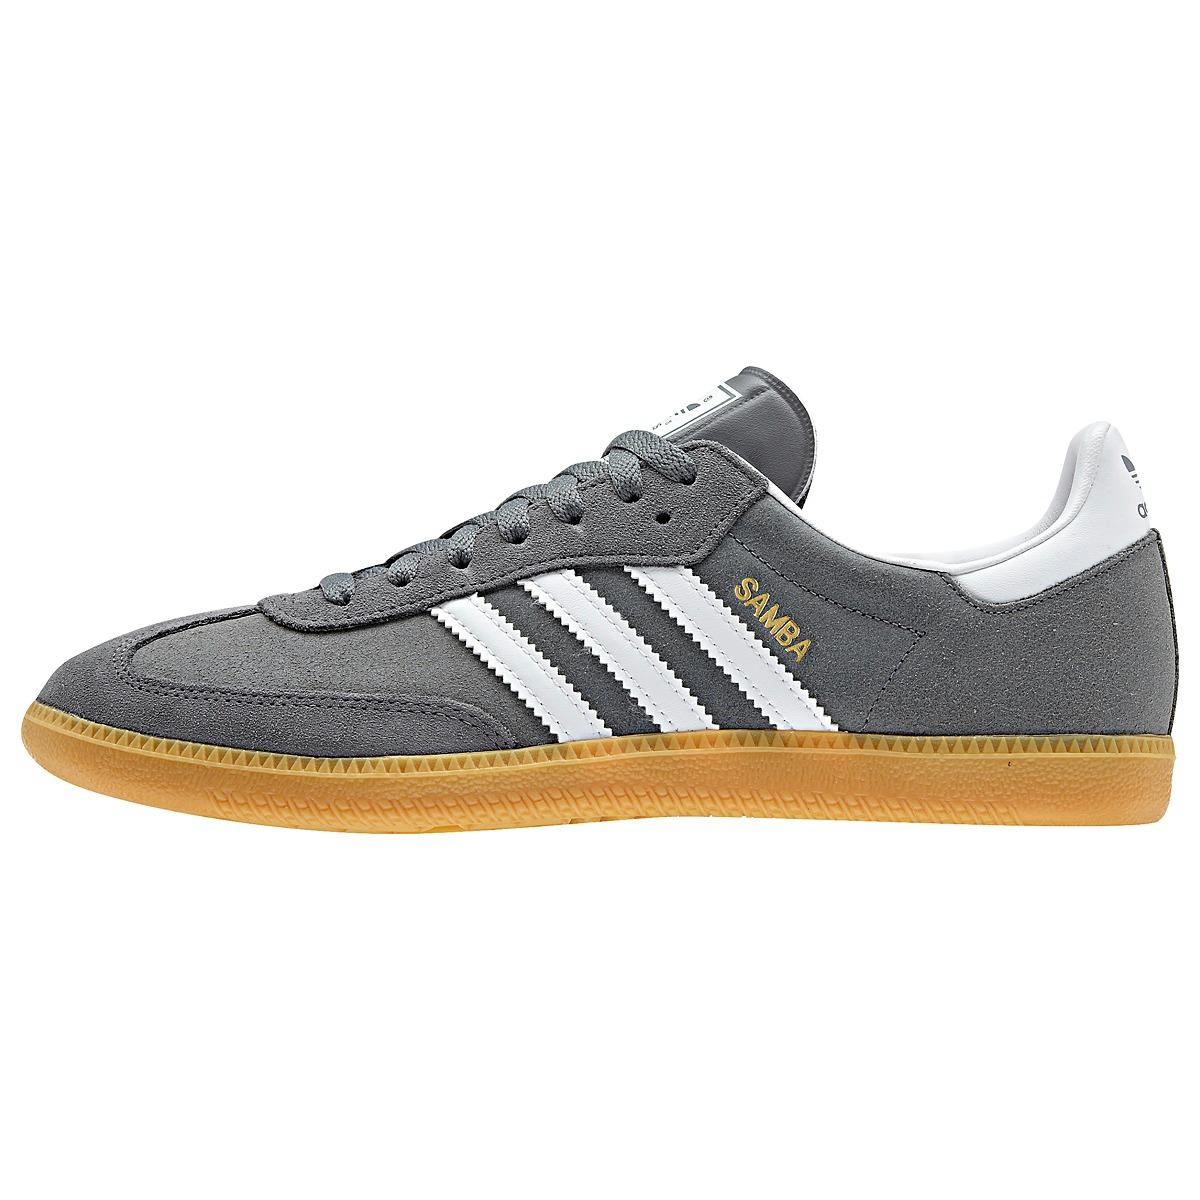 adidas originals samba diverse farben herren damen schuhe sneaker turnschuhe ebay. Black Bedroom Furniture Sets. Home Design Ideas